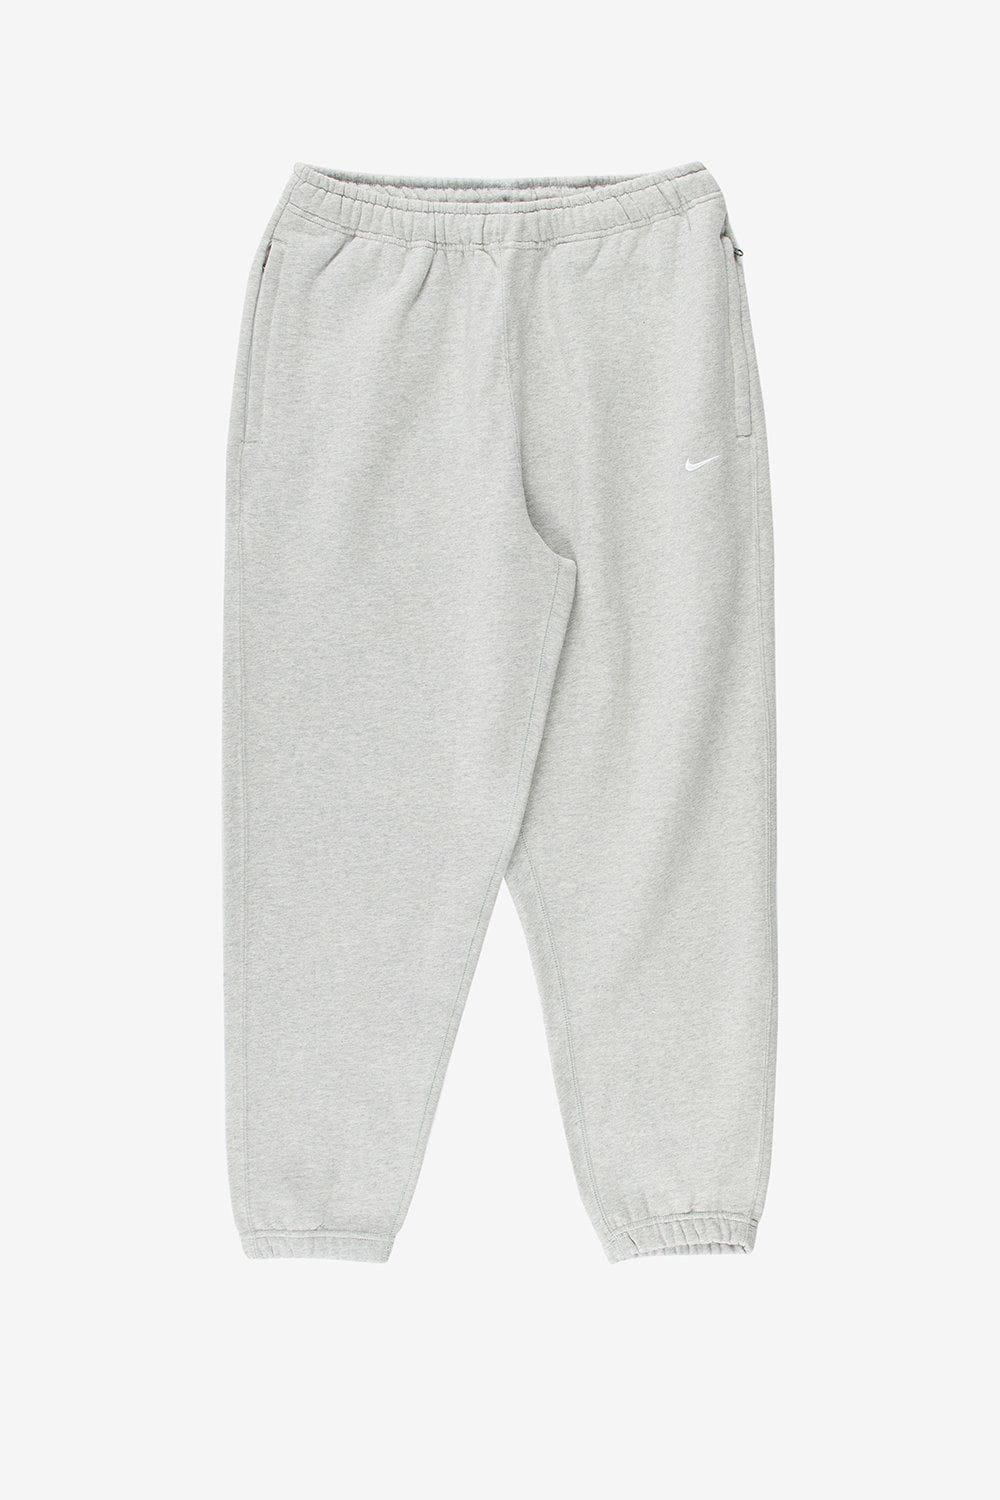 Nike Apparel NikeLab Fleece Pants